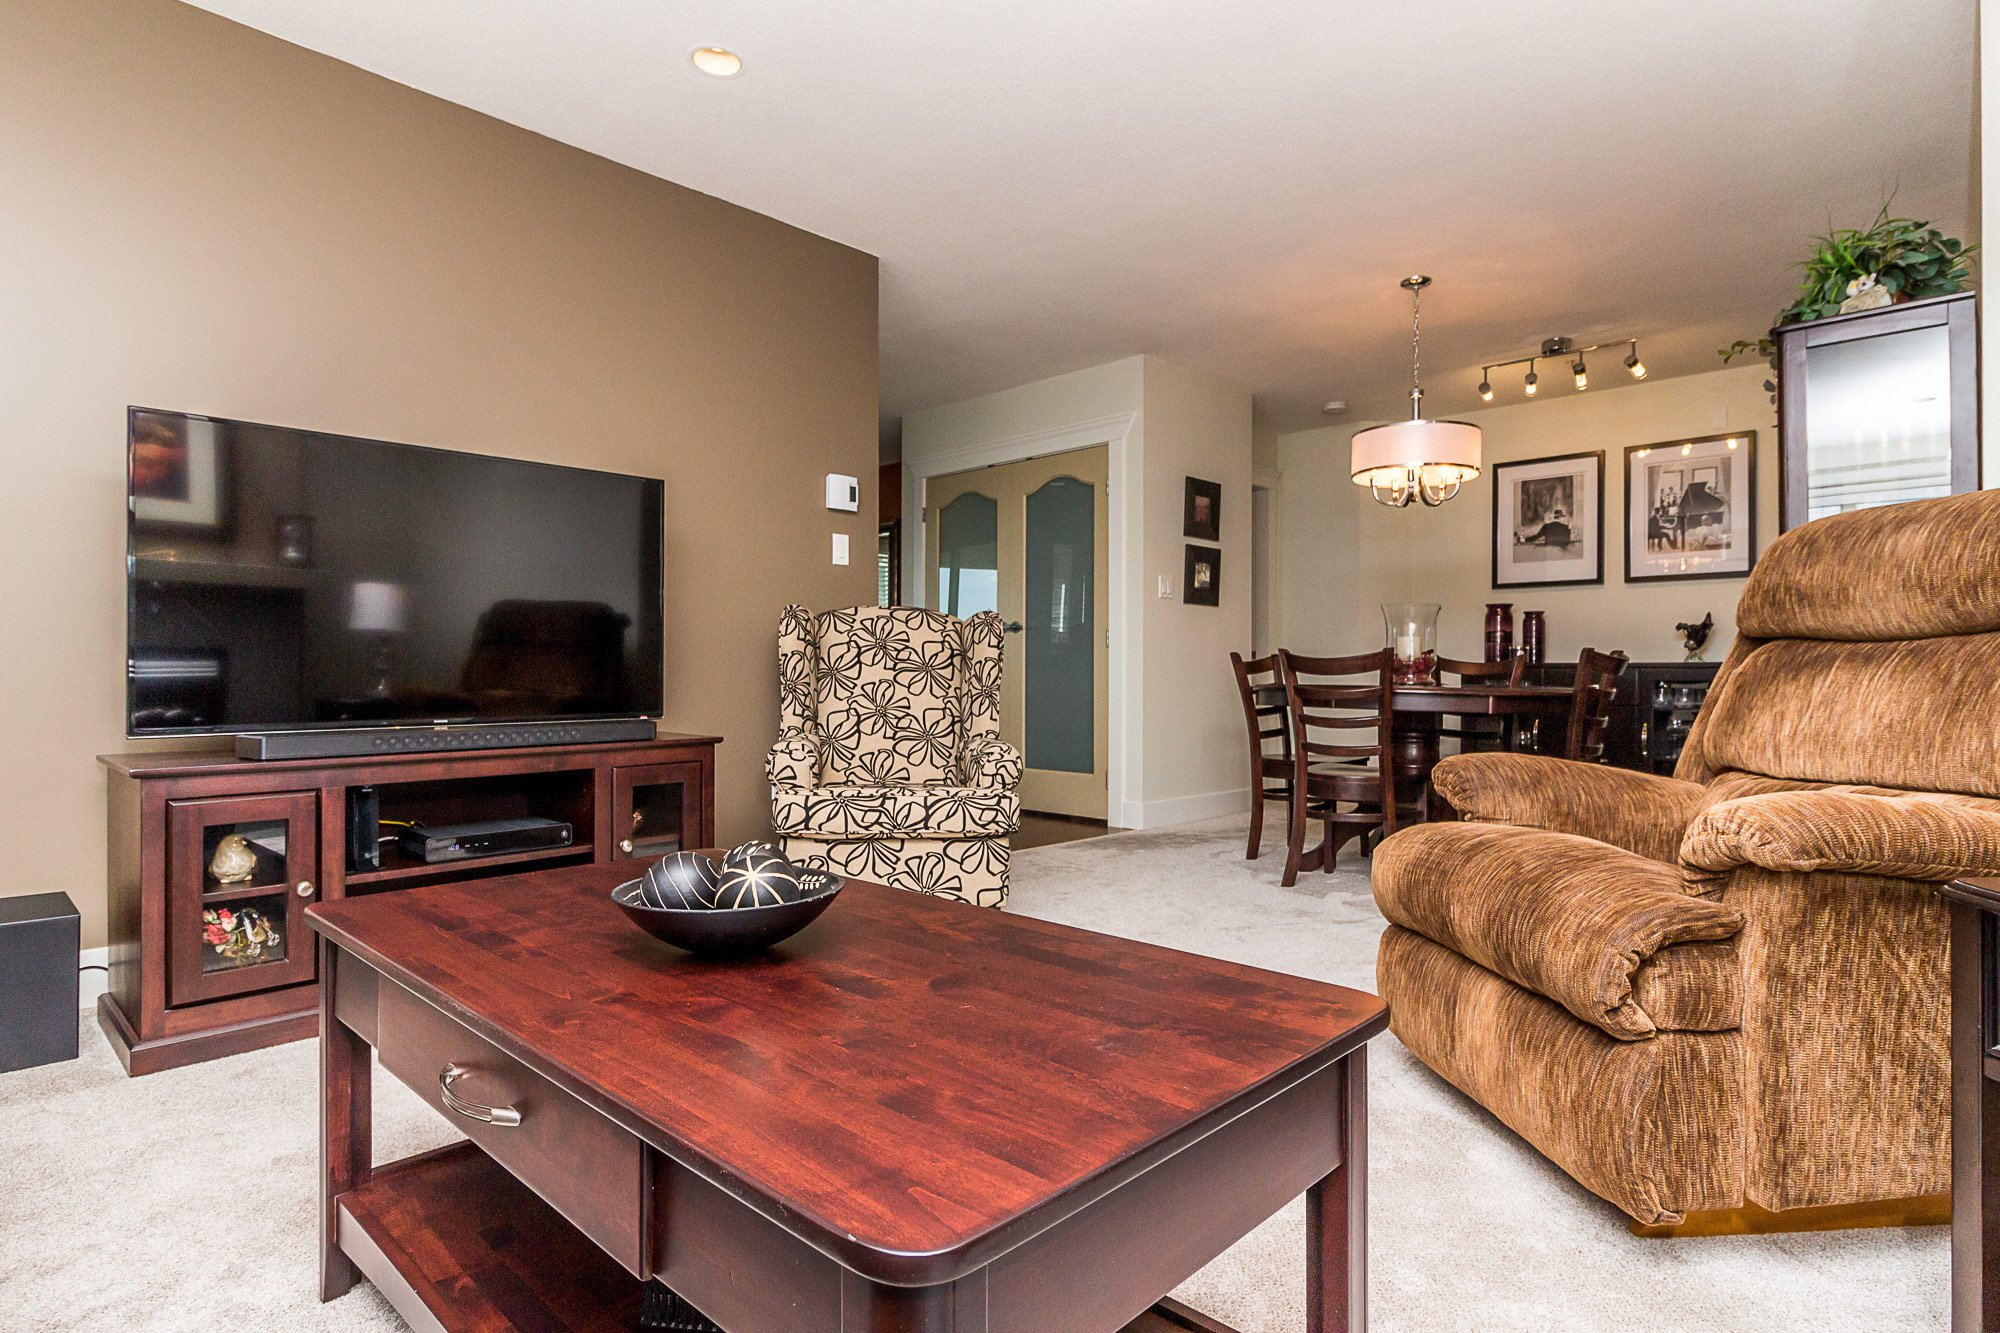 """Photo 5: Photos: 412 22022 49 Avenue in Langley: Murrayville Condo for sale in """"Murray Green"""" : MLS®# R2266359"""